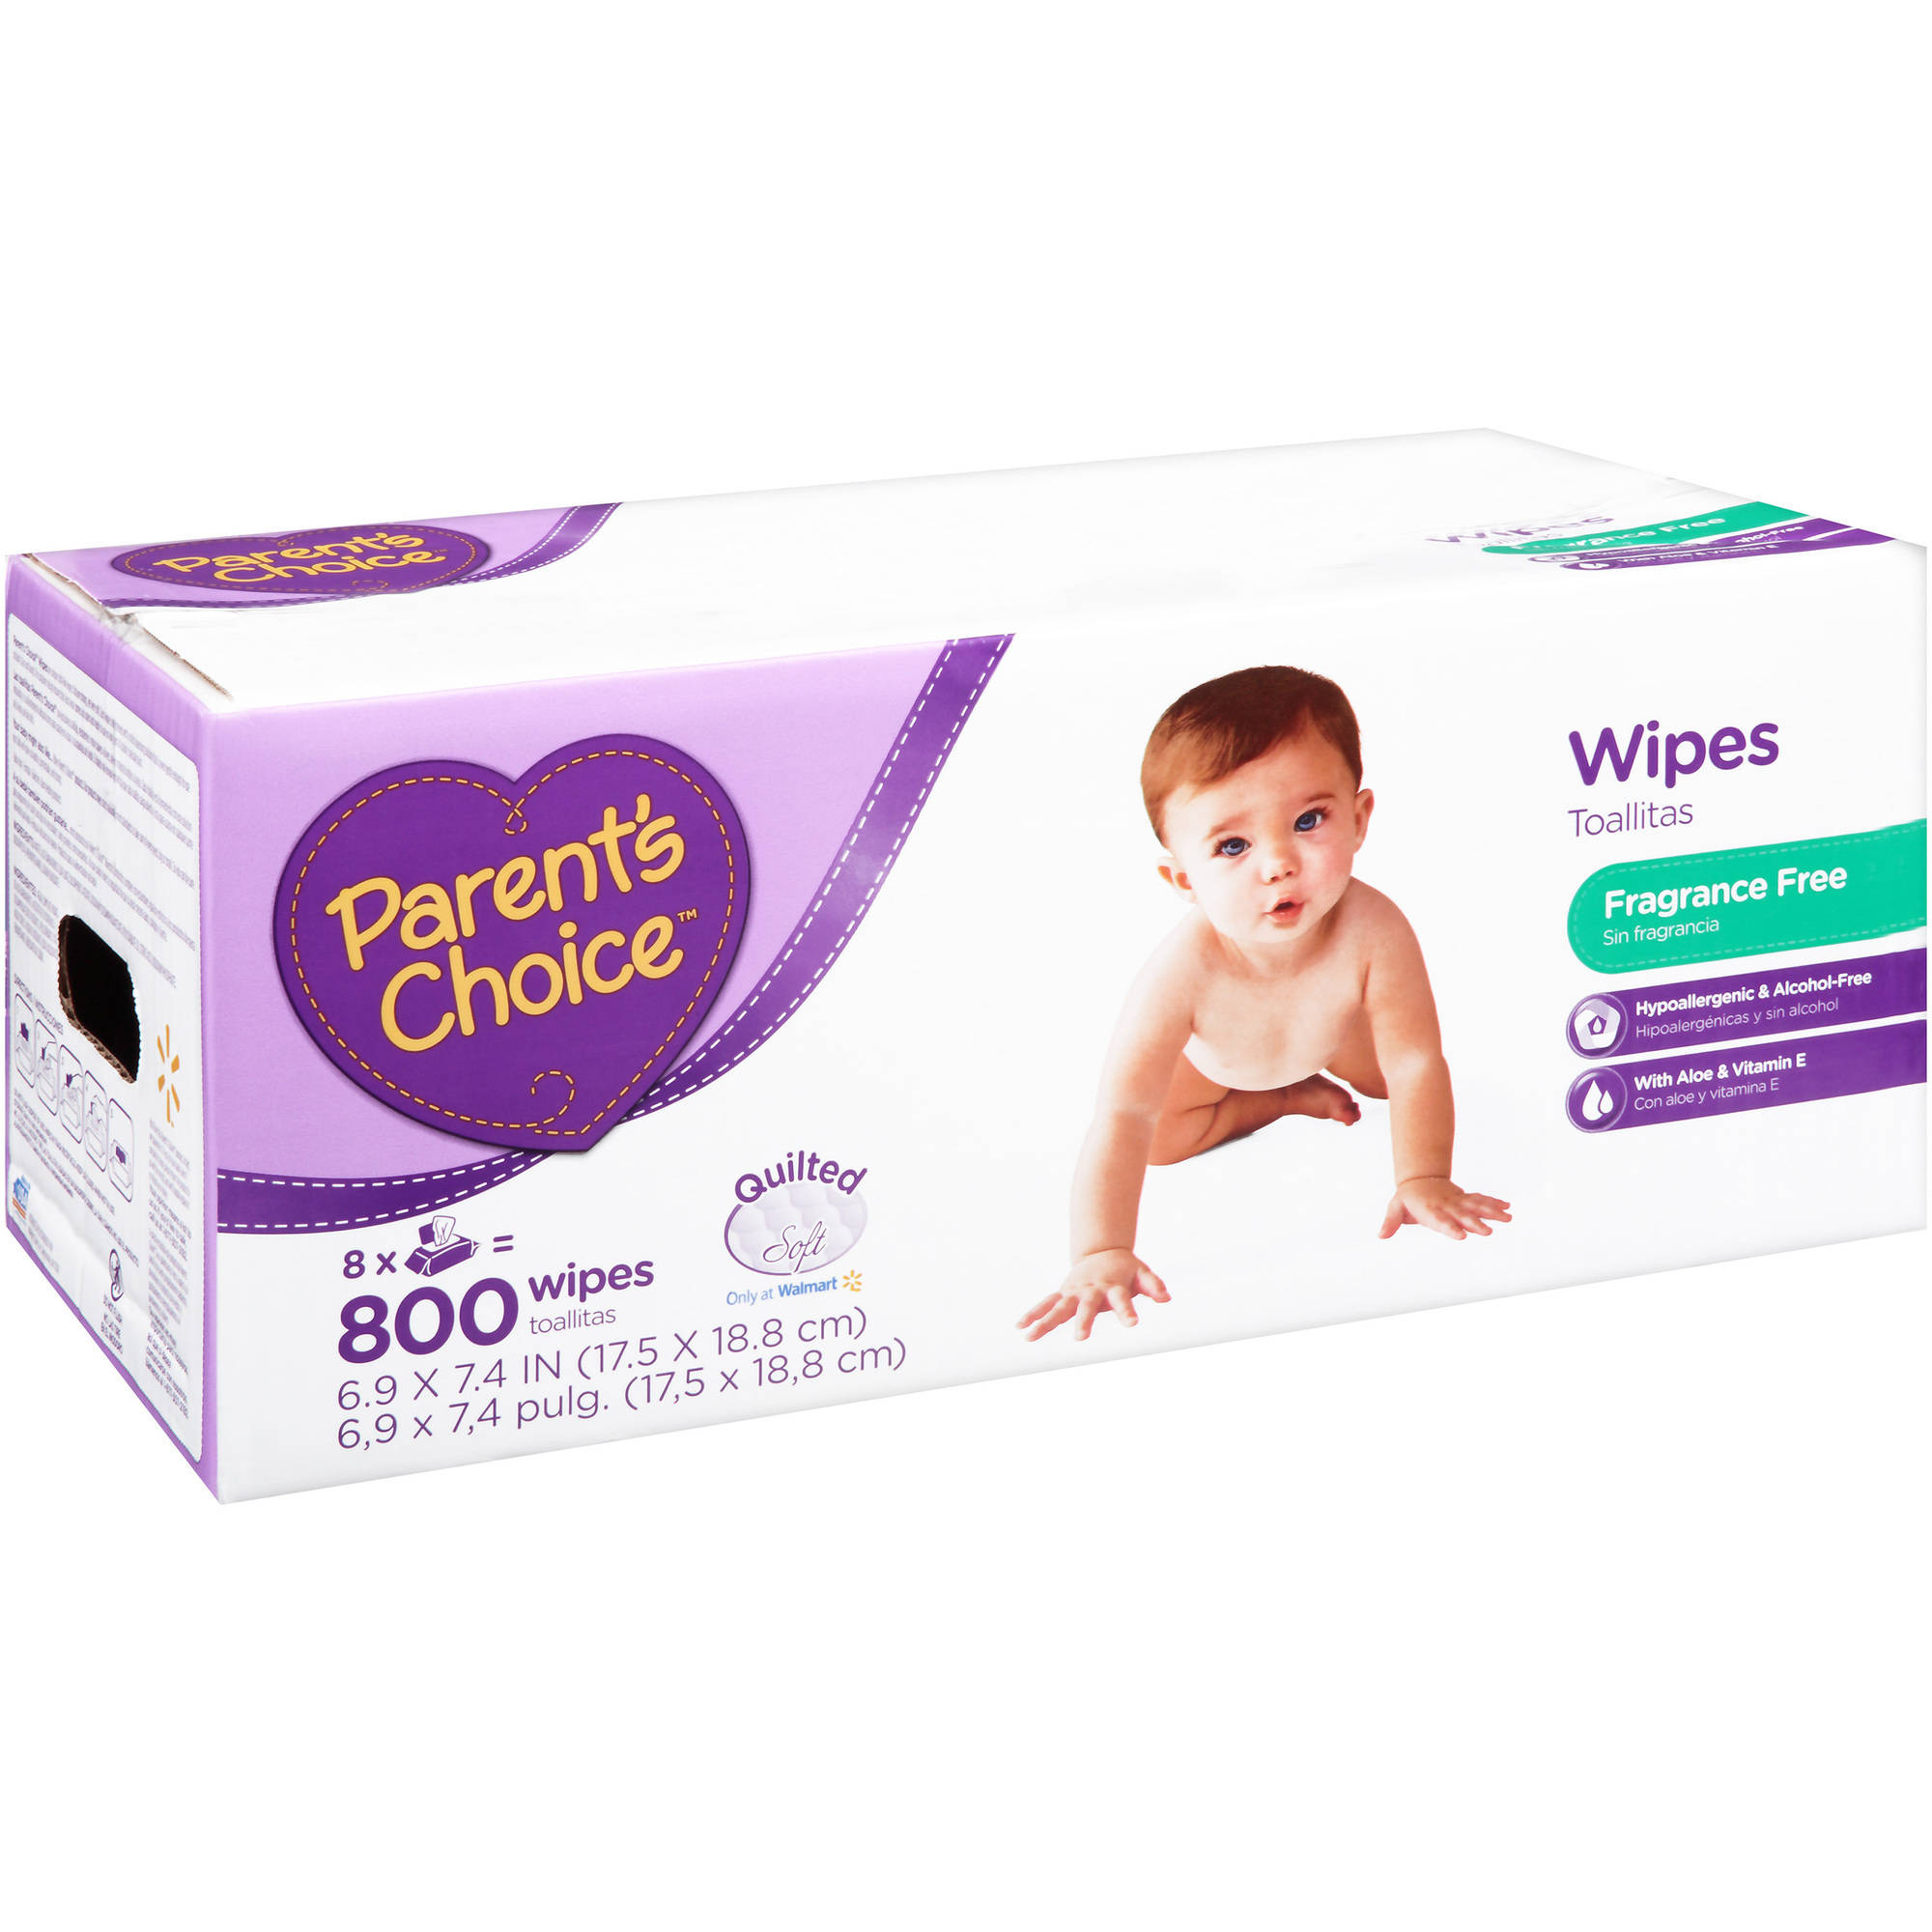 Parent's Choice Fragrance Free Baby Wipes, 800 sheets